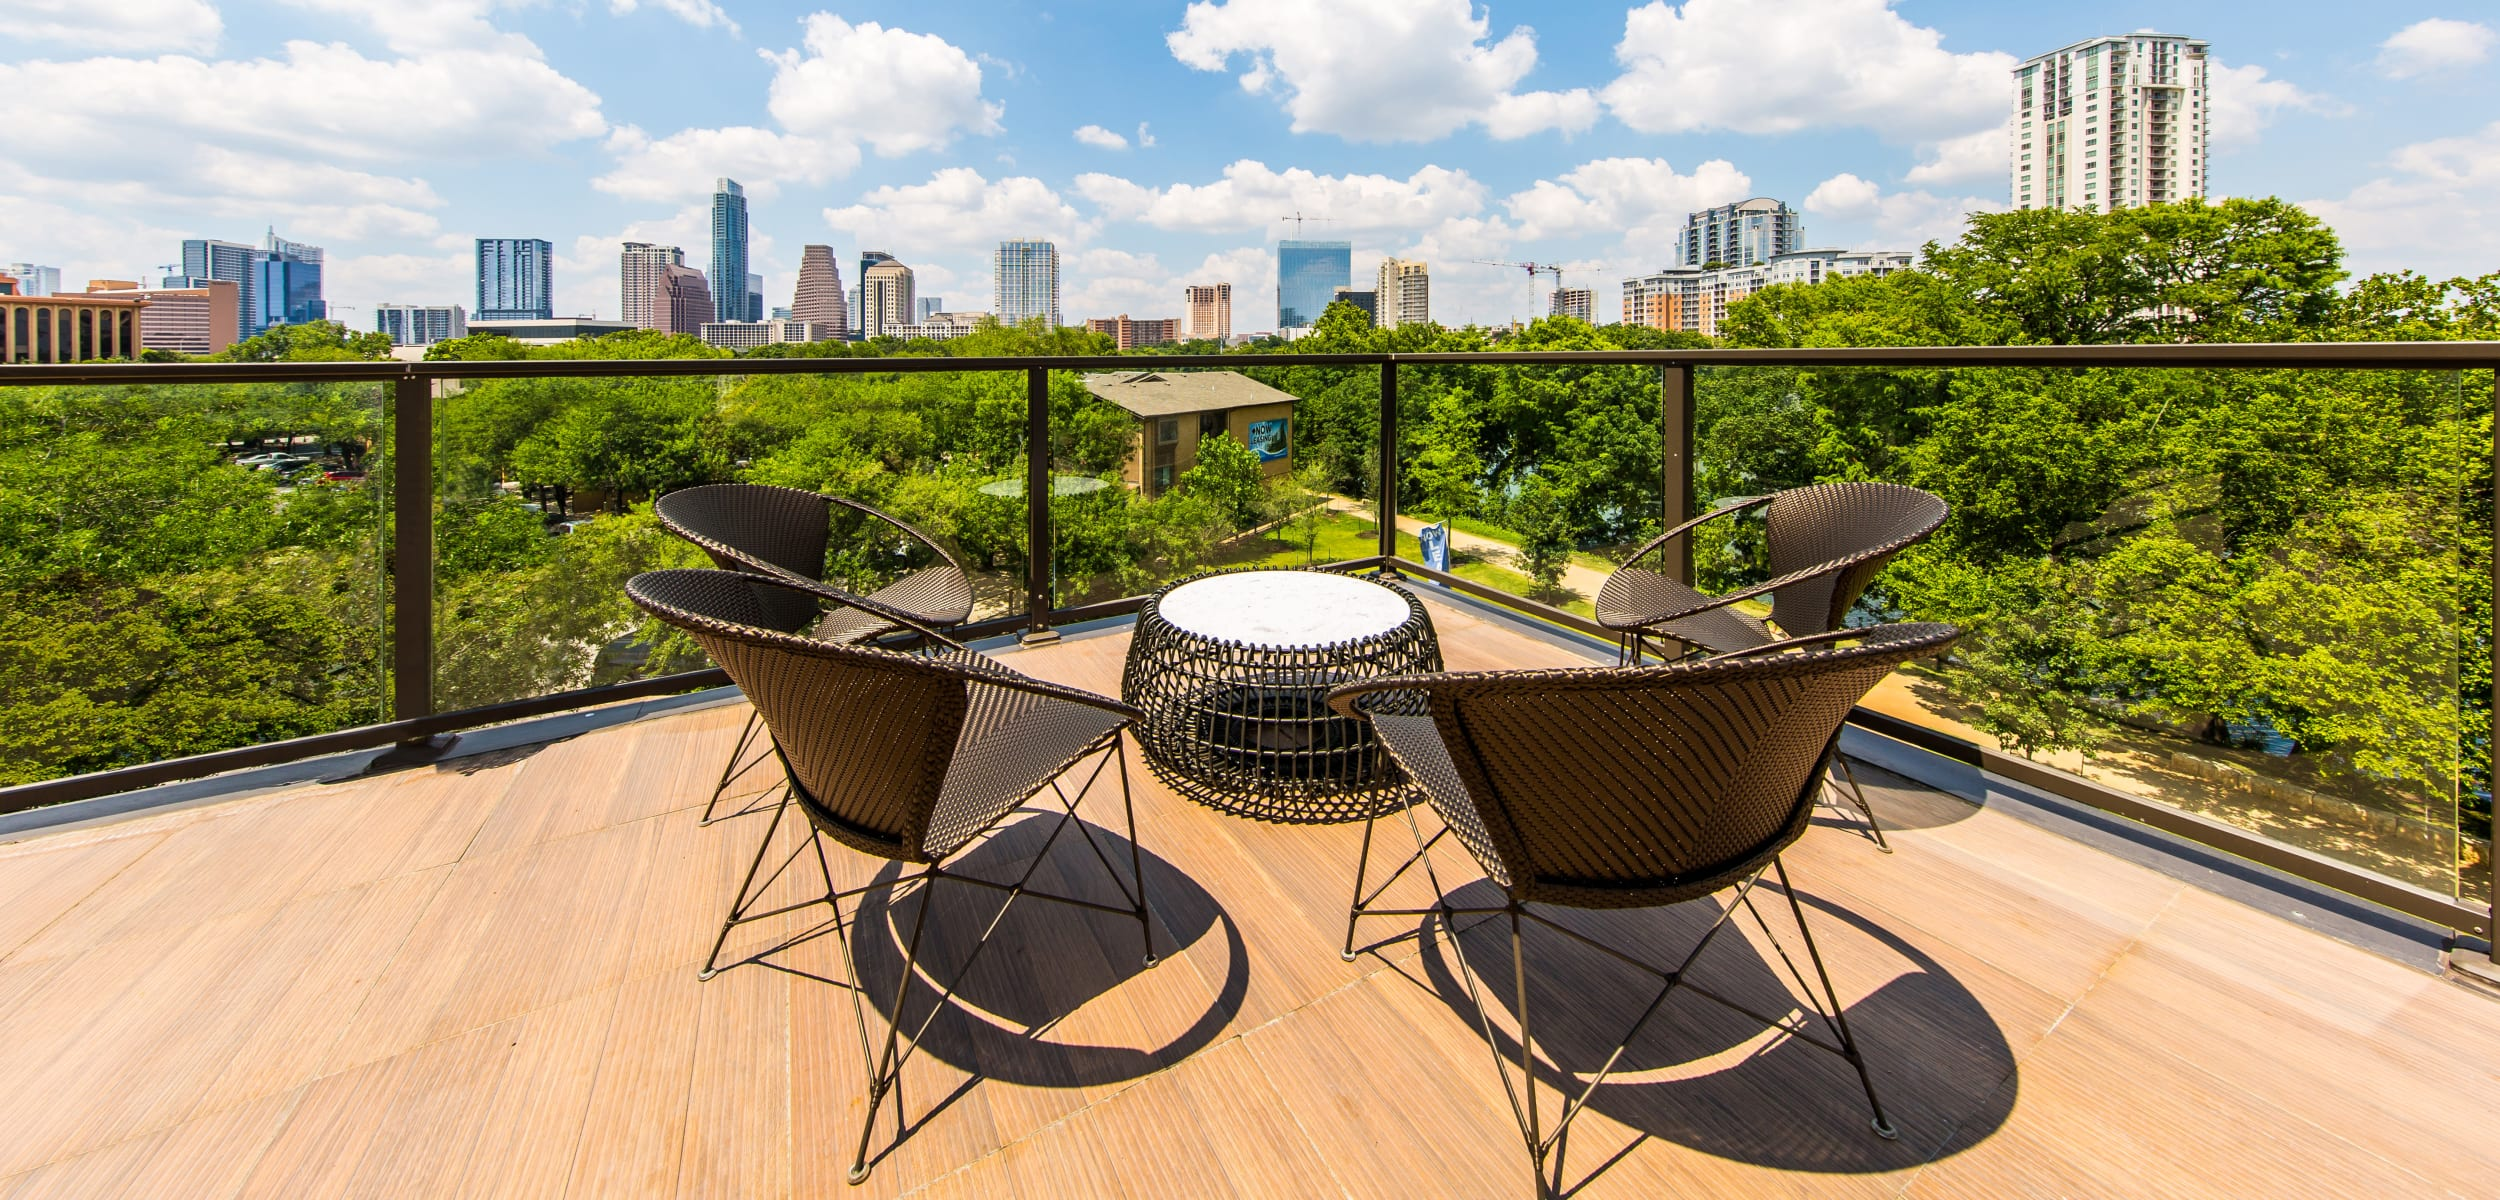 Outdoor patio area at Water Marq in Austin, Texas